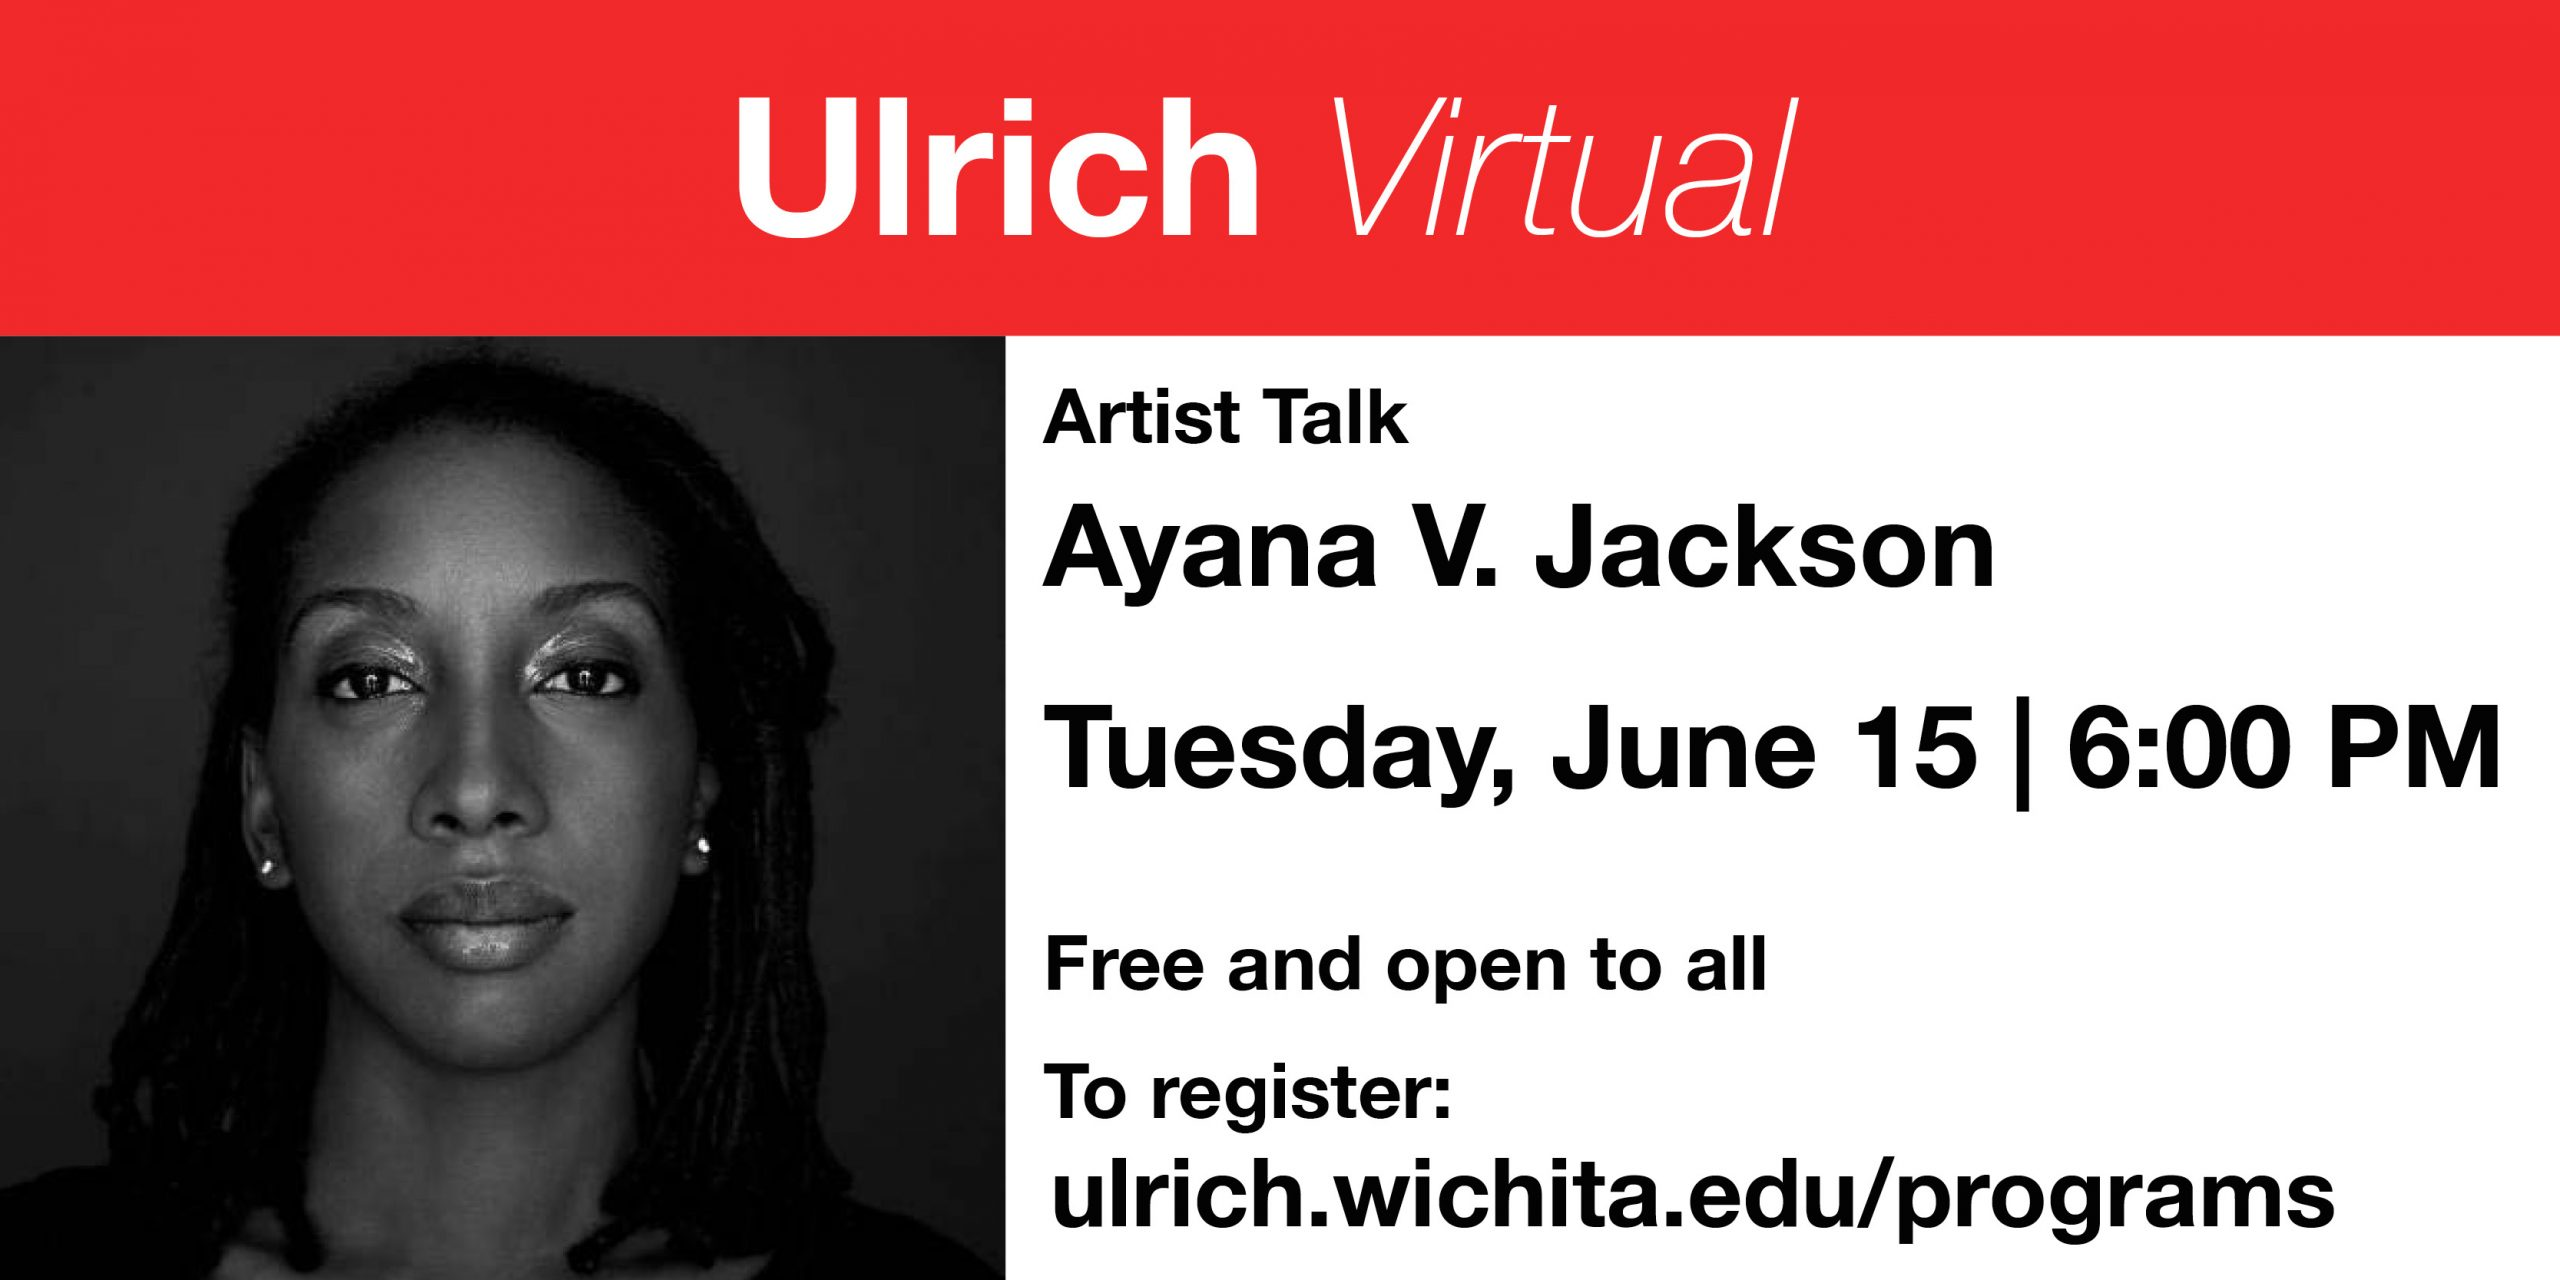 Ulrich Virtual. Artist Talk. Ayana V. Jackson. Tuesday, June 15th. 6 p.m. Free and open to all. To register: ulrich.wichita.edu/programs